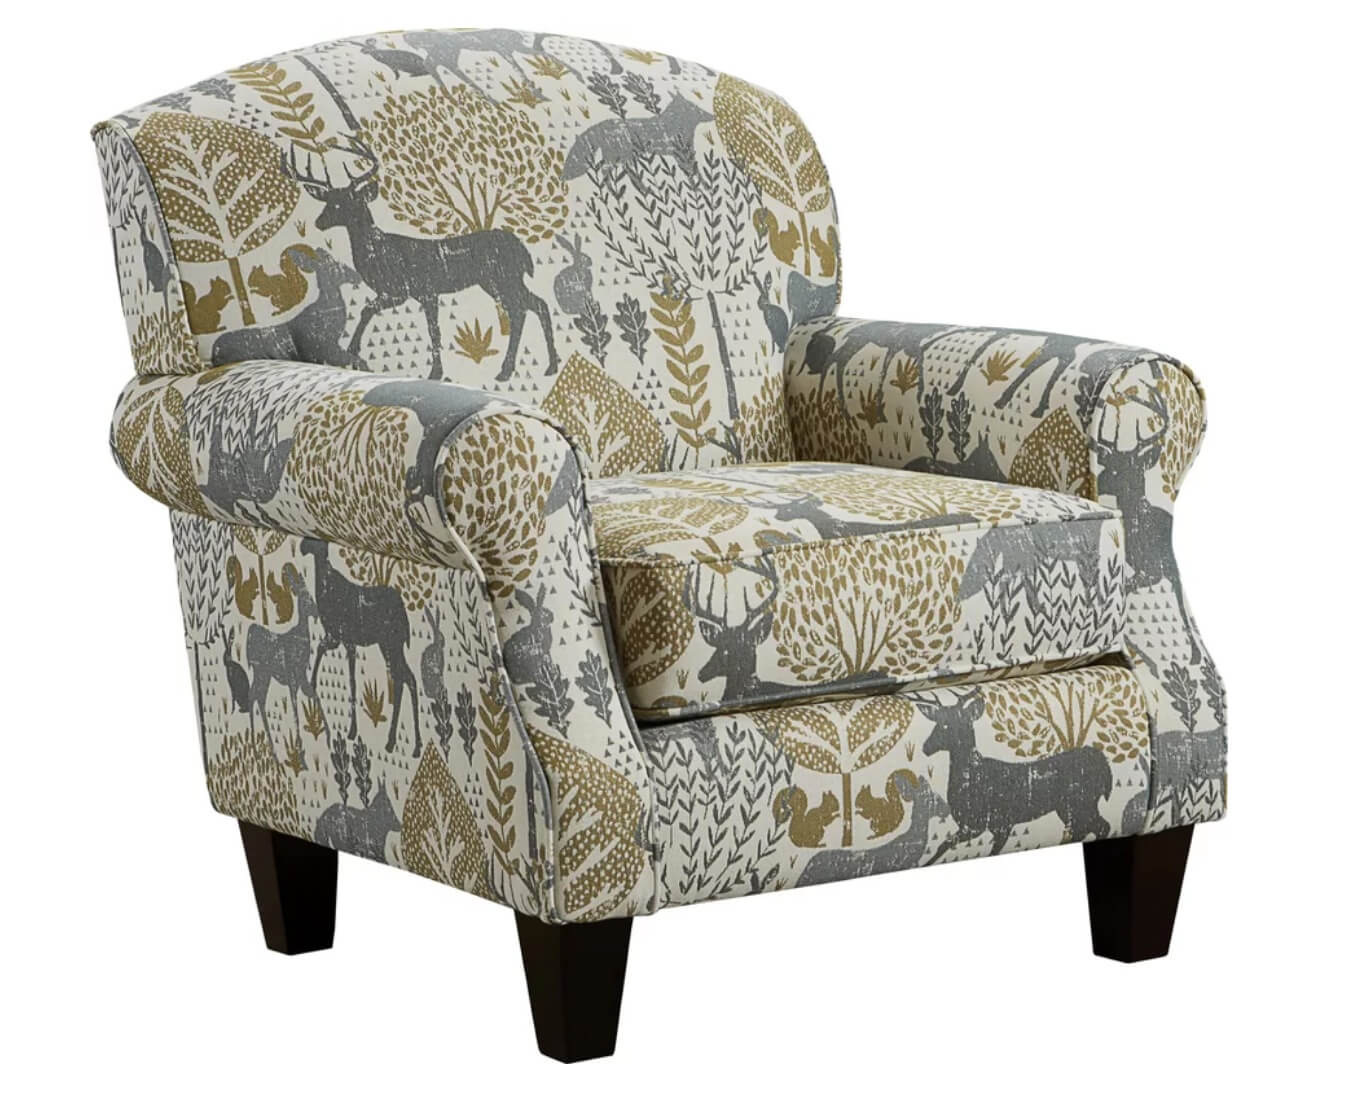 Modern rustic accent chair